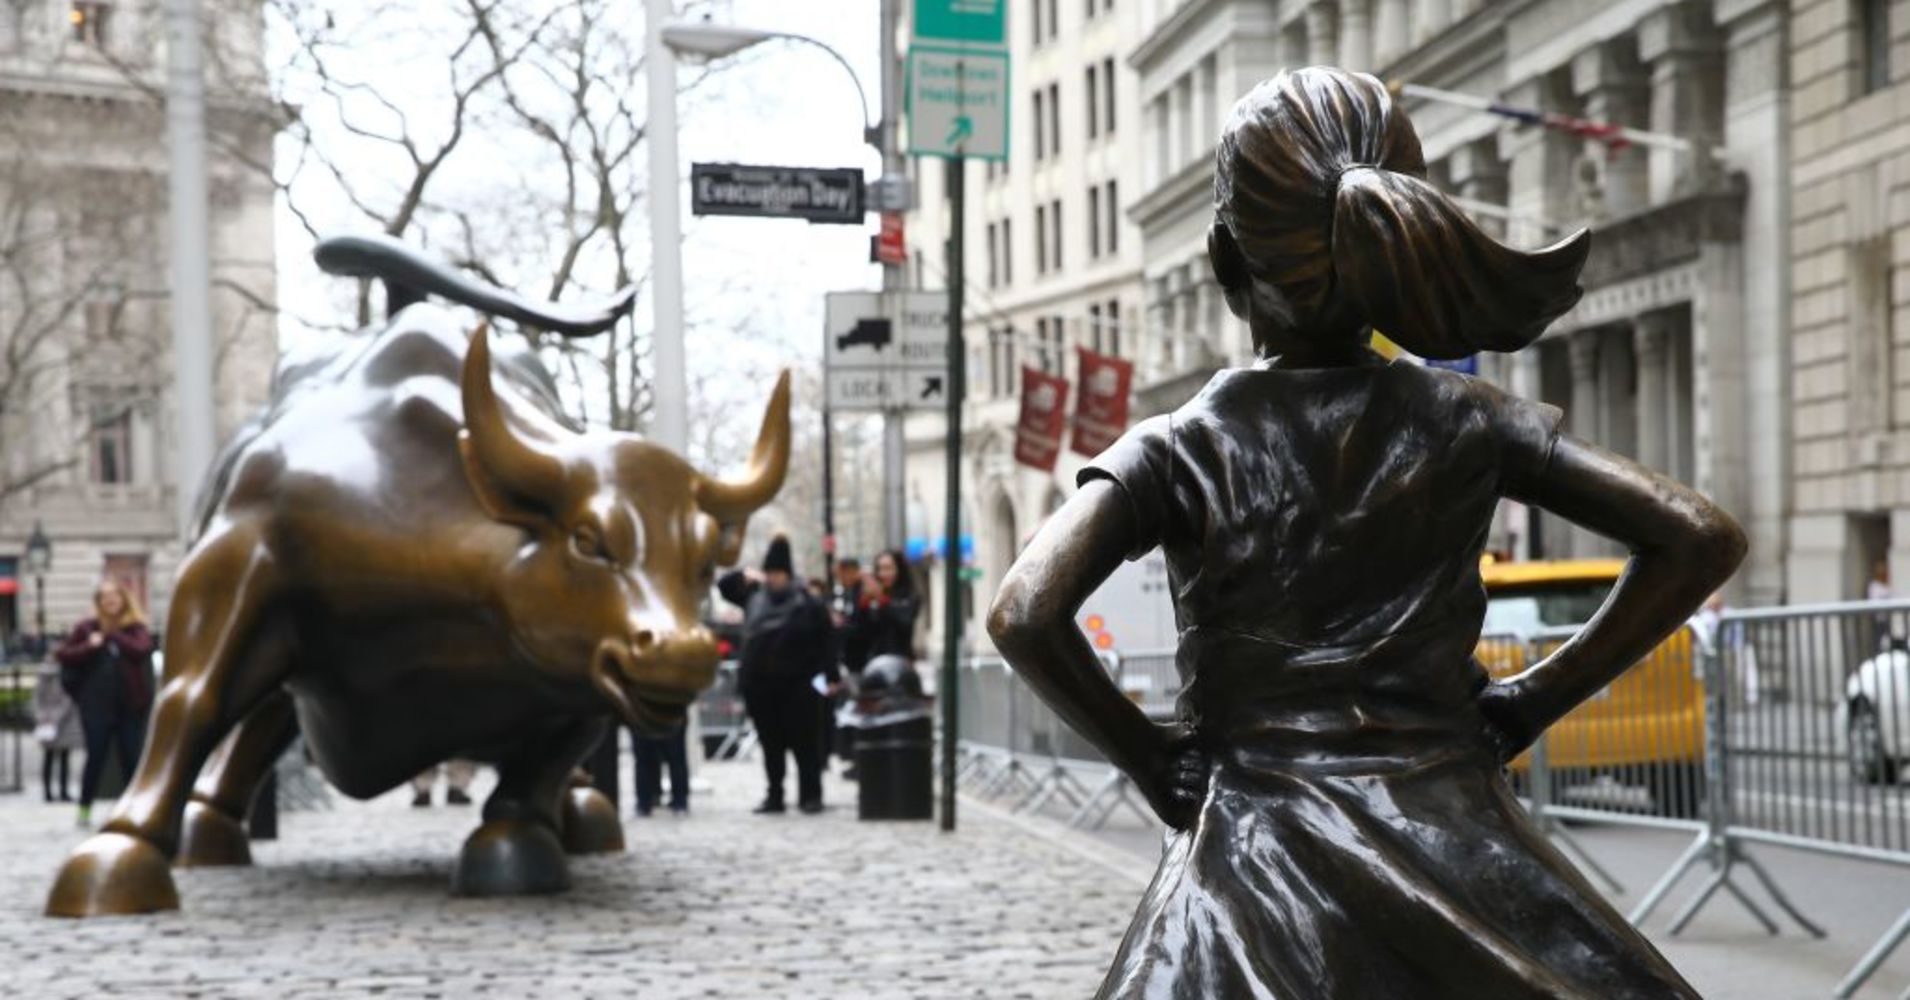 104553750-Fearless_Girl_GettyImages-660180004.1910x1000.jpg